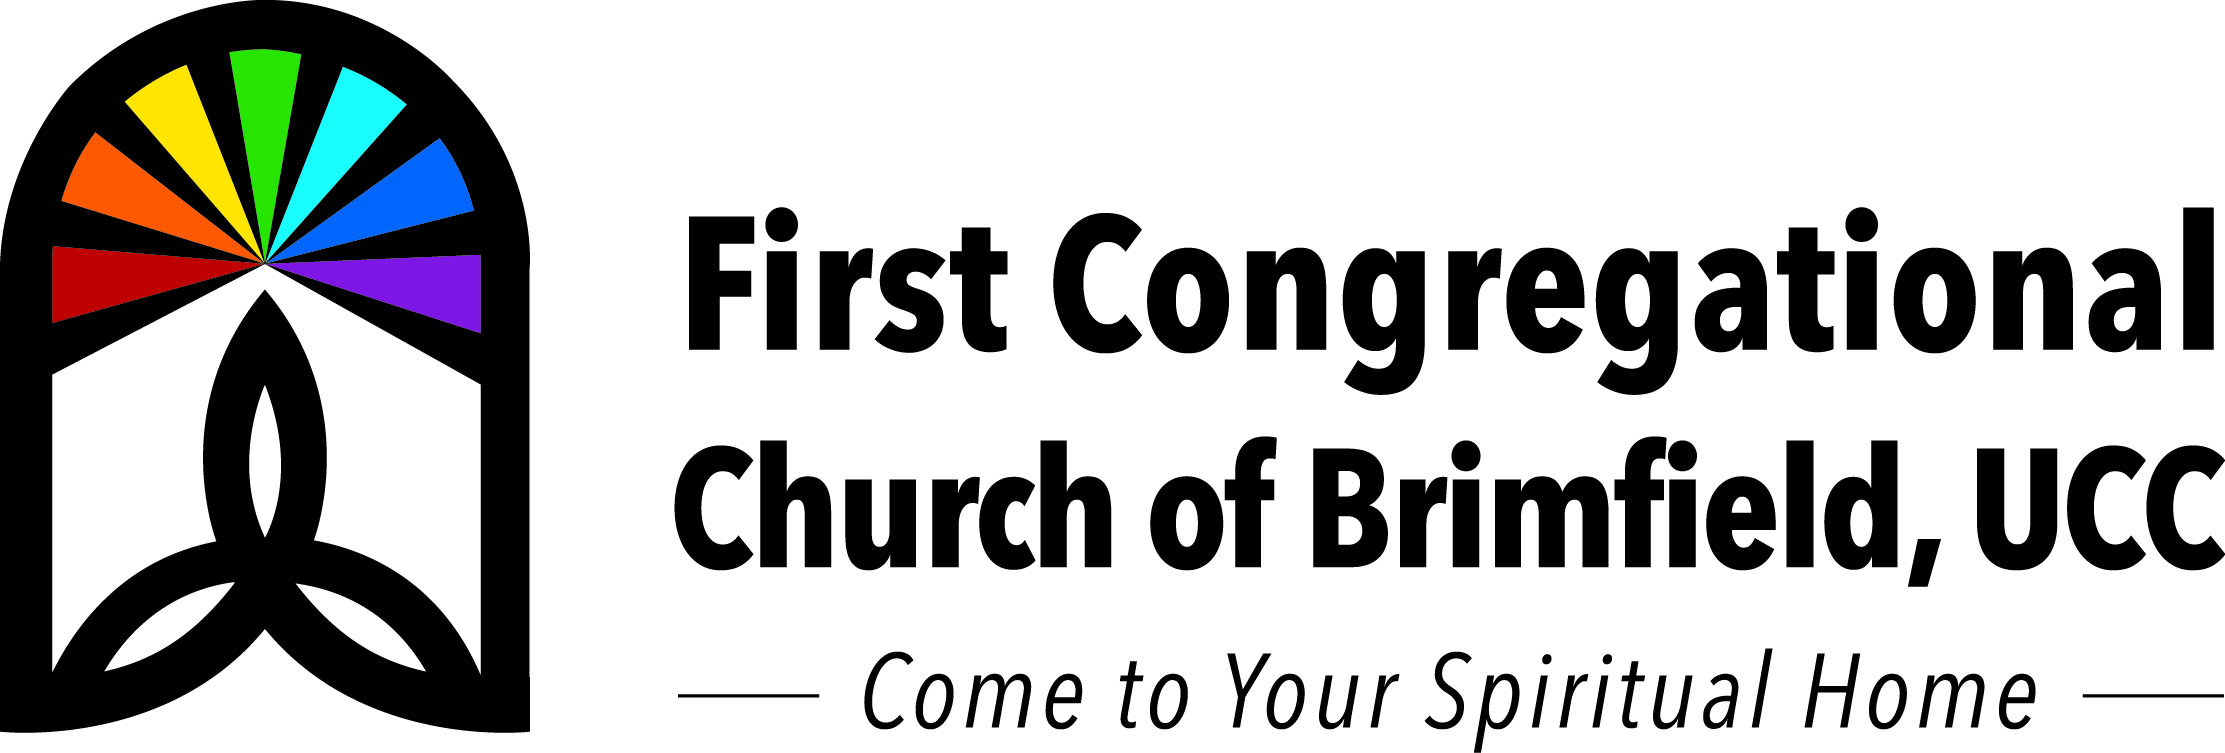 First Congregational Church of Brimfield, UCC